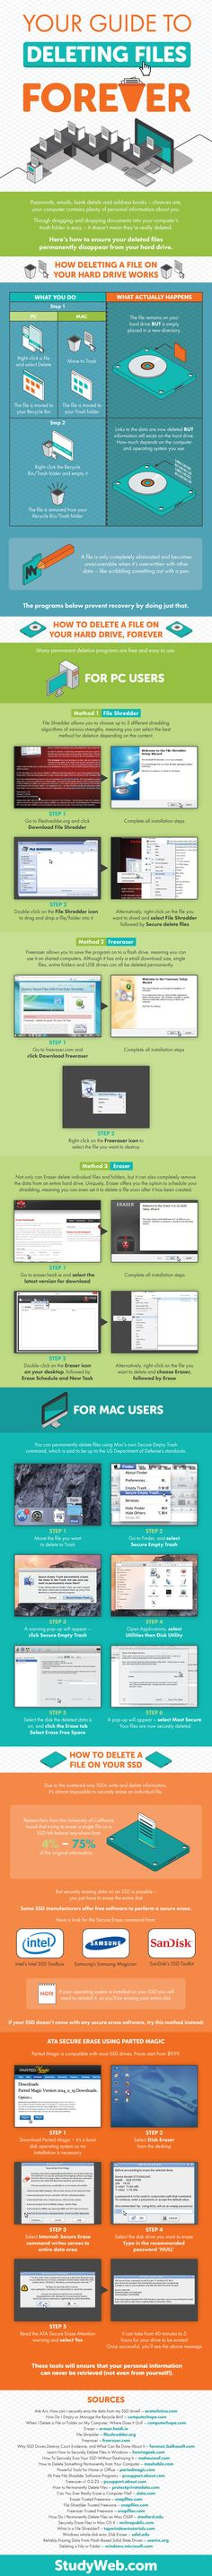 Your Guide to Deleting Files Forever #infographic #Internet #Computer #HardDrive